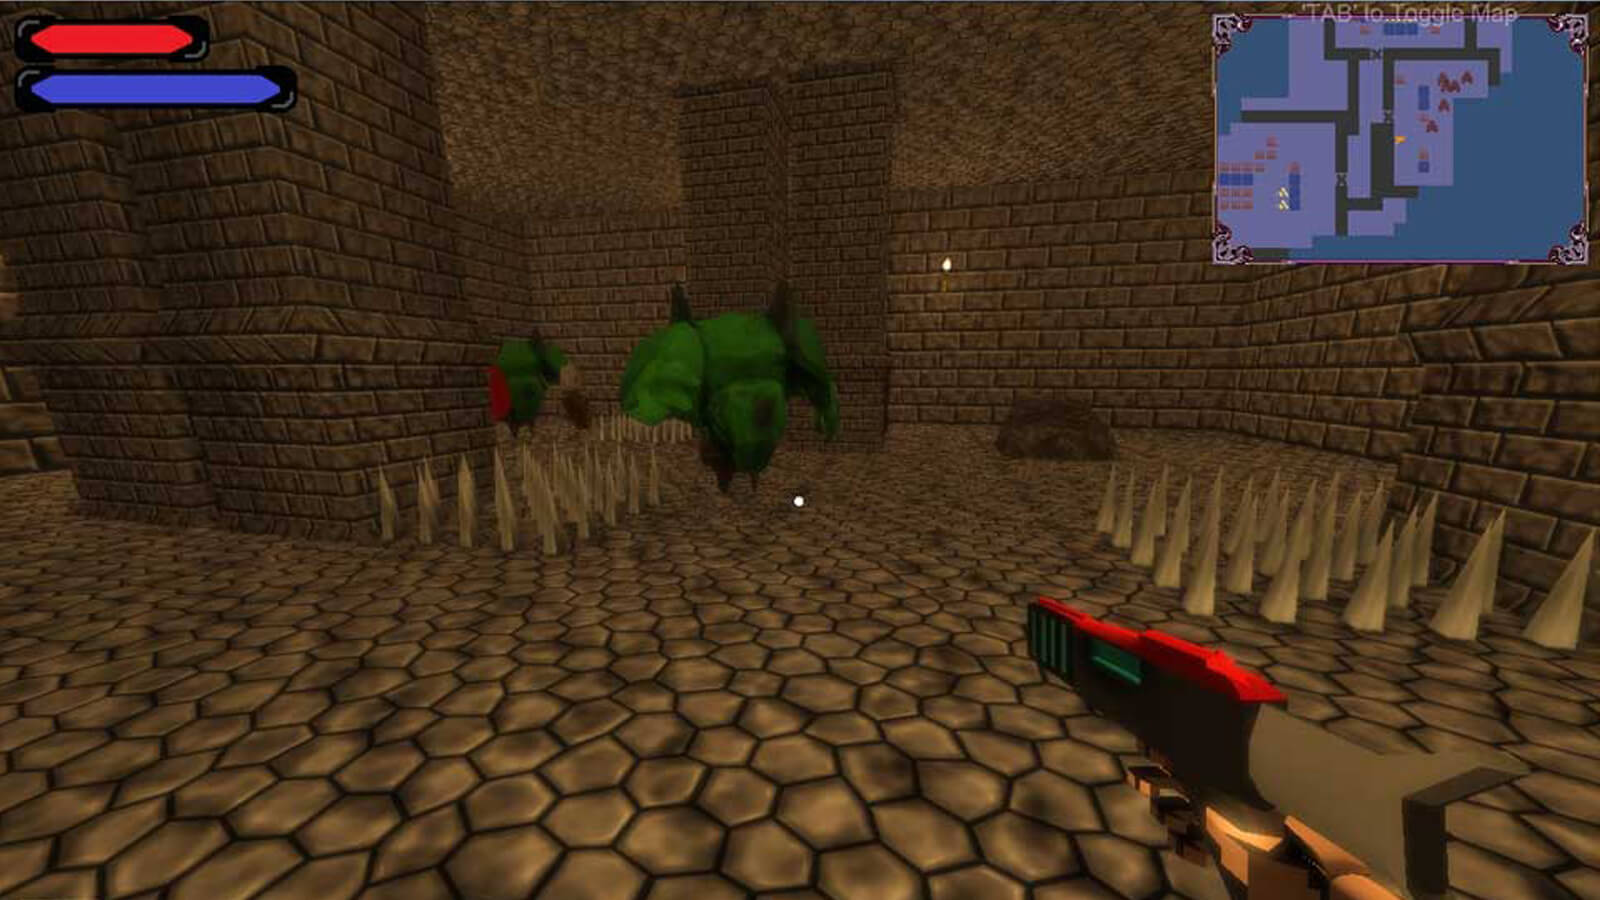 The player aims at a green ogre in a stony dungeon littered with metal spikes on the floor